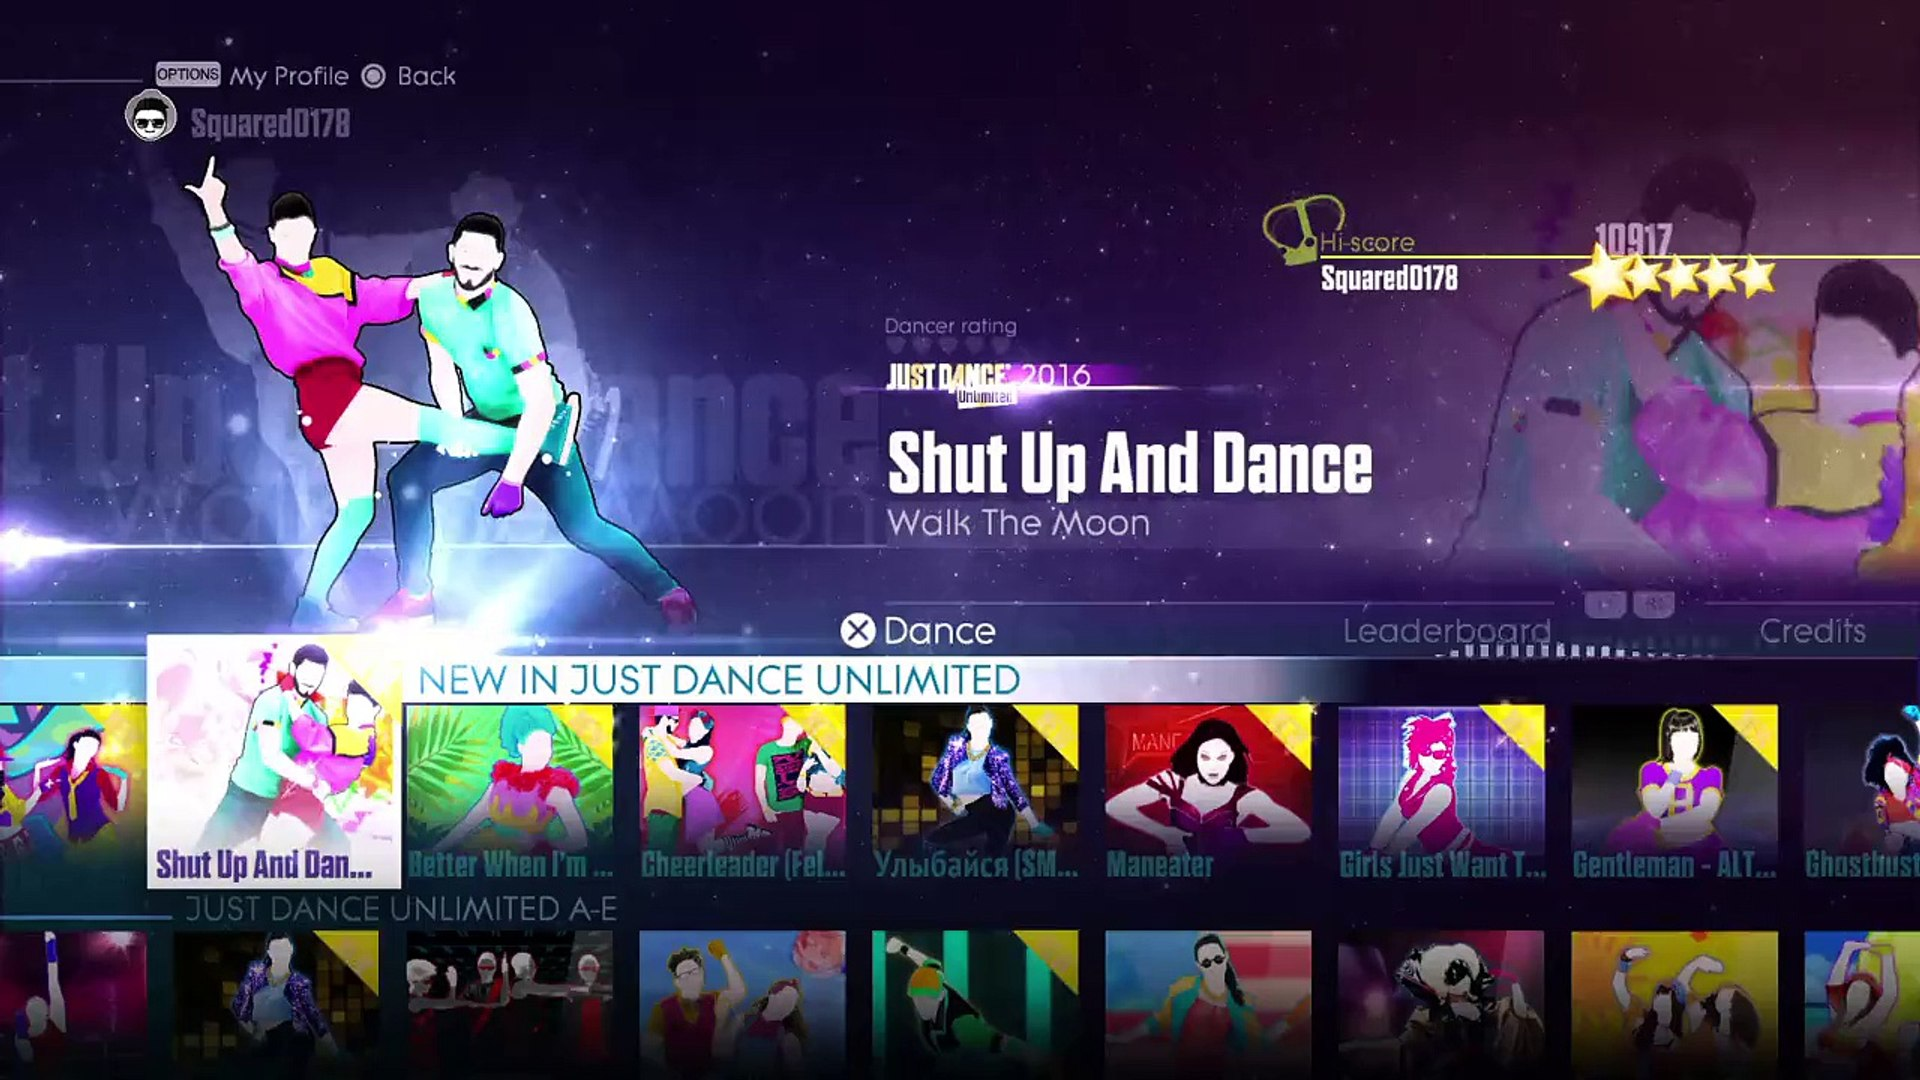 Just Dance® Unlimited - Shut Up and Dance by WALK THE MOON